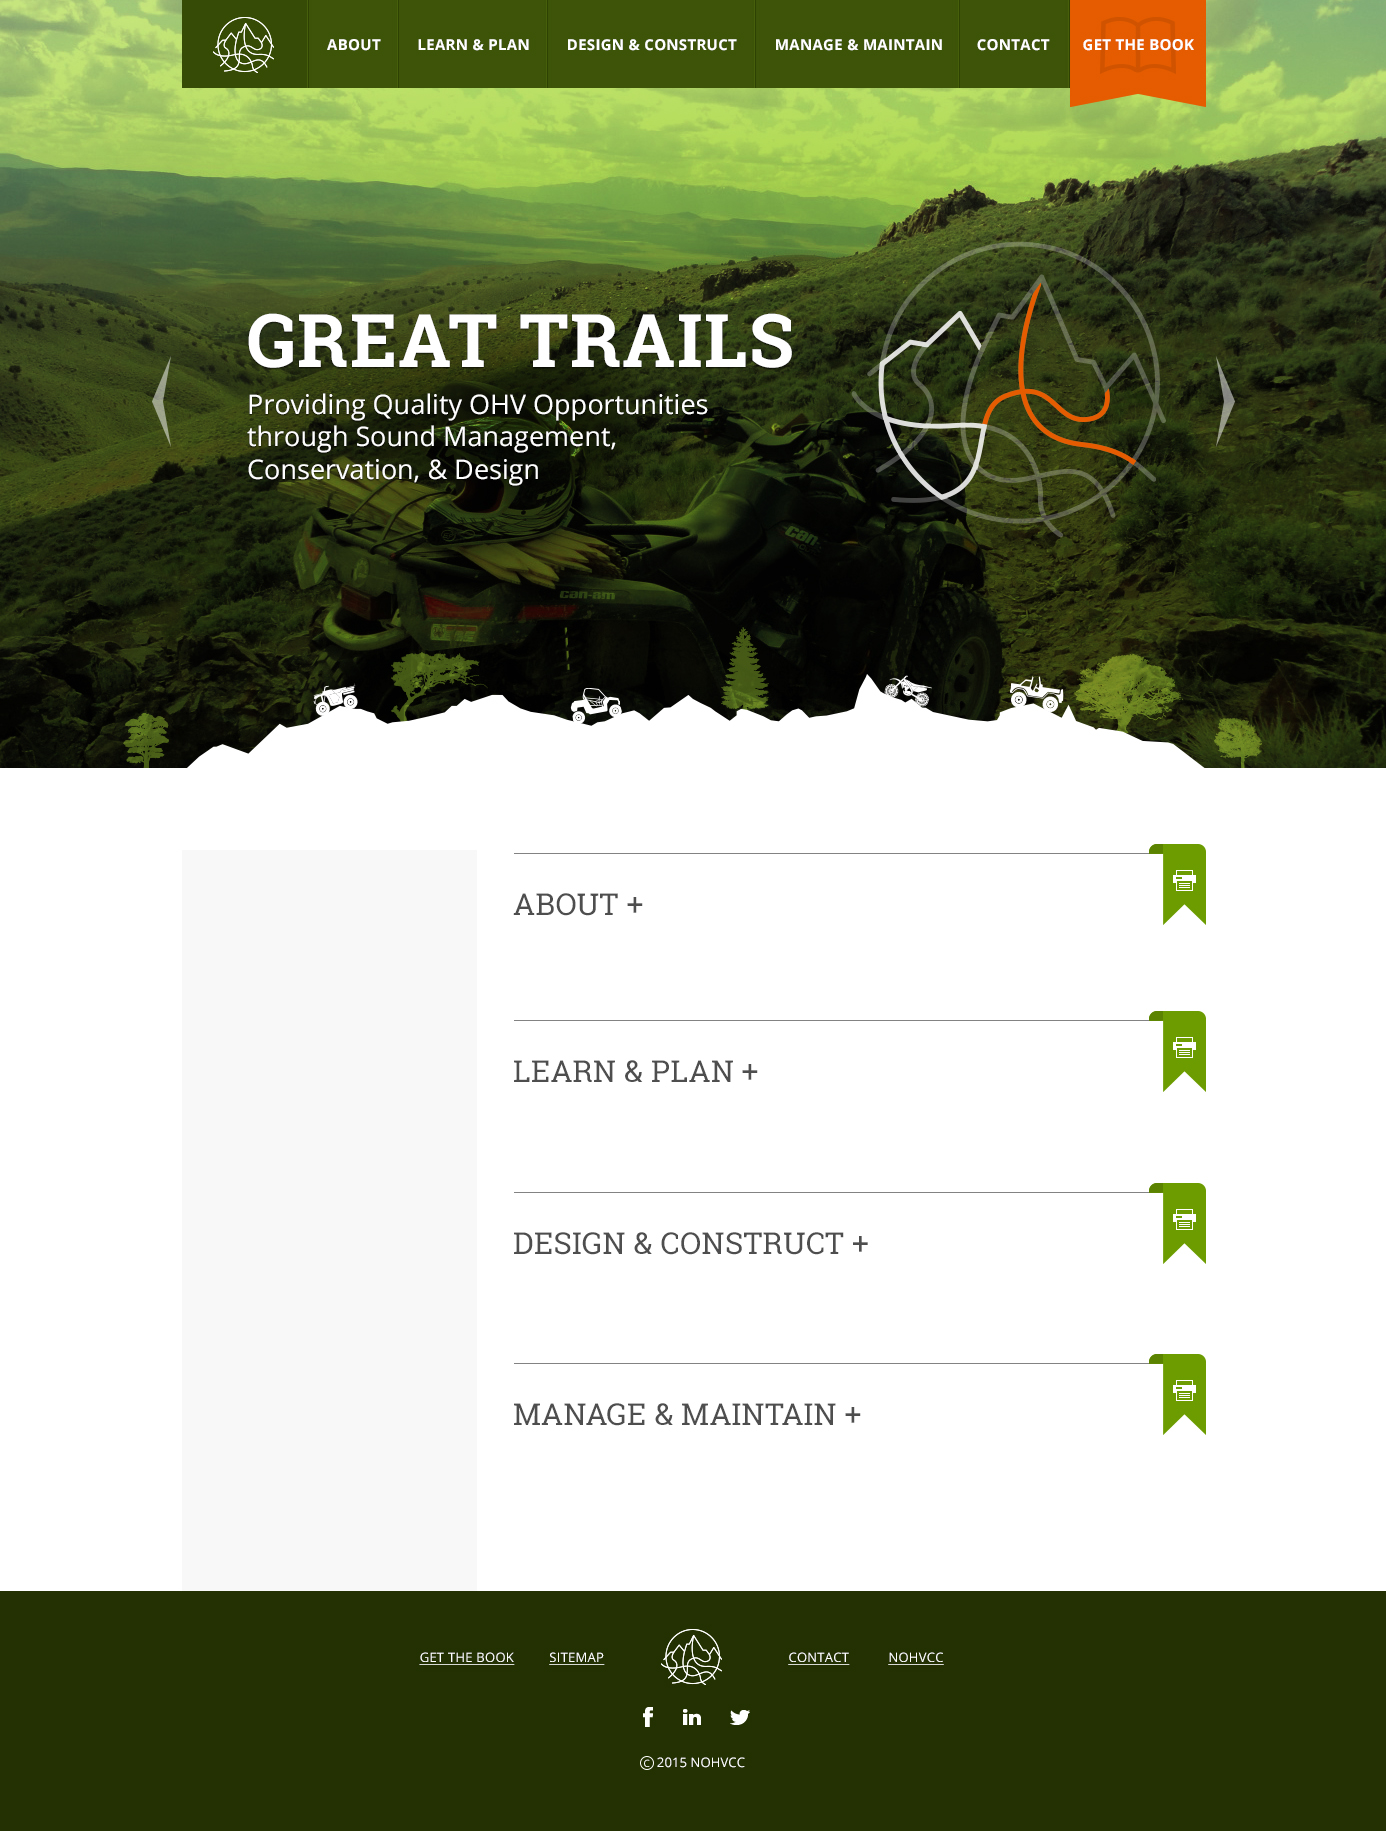 GreatTrails_Website_Home_Page_Collapsed_2.10.15.jpg